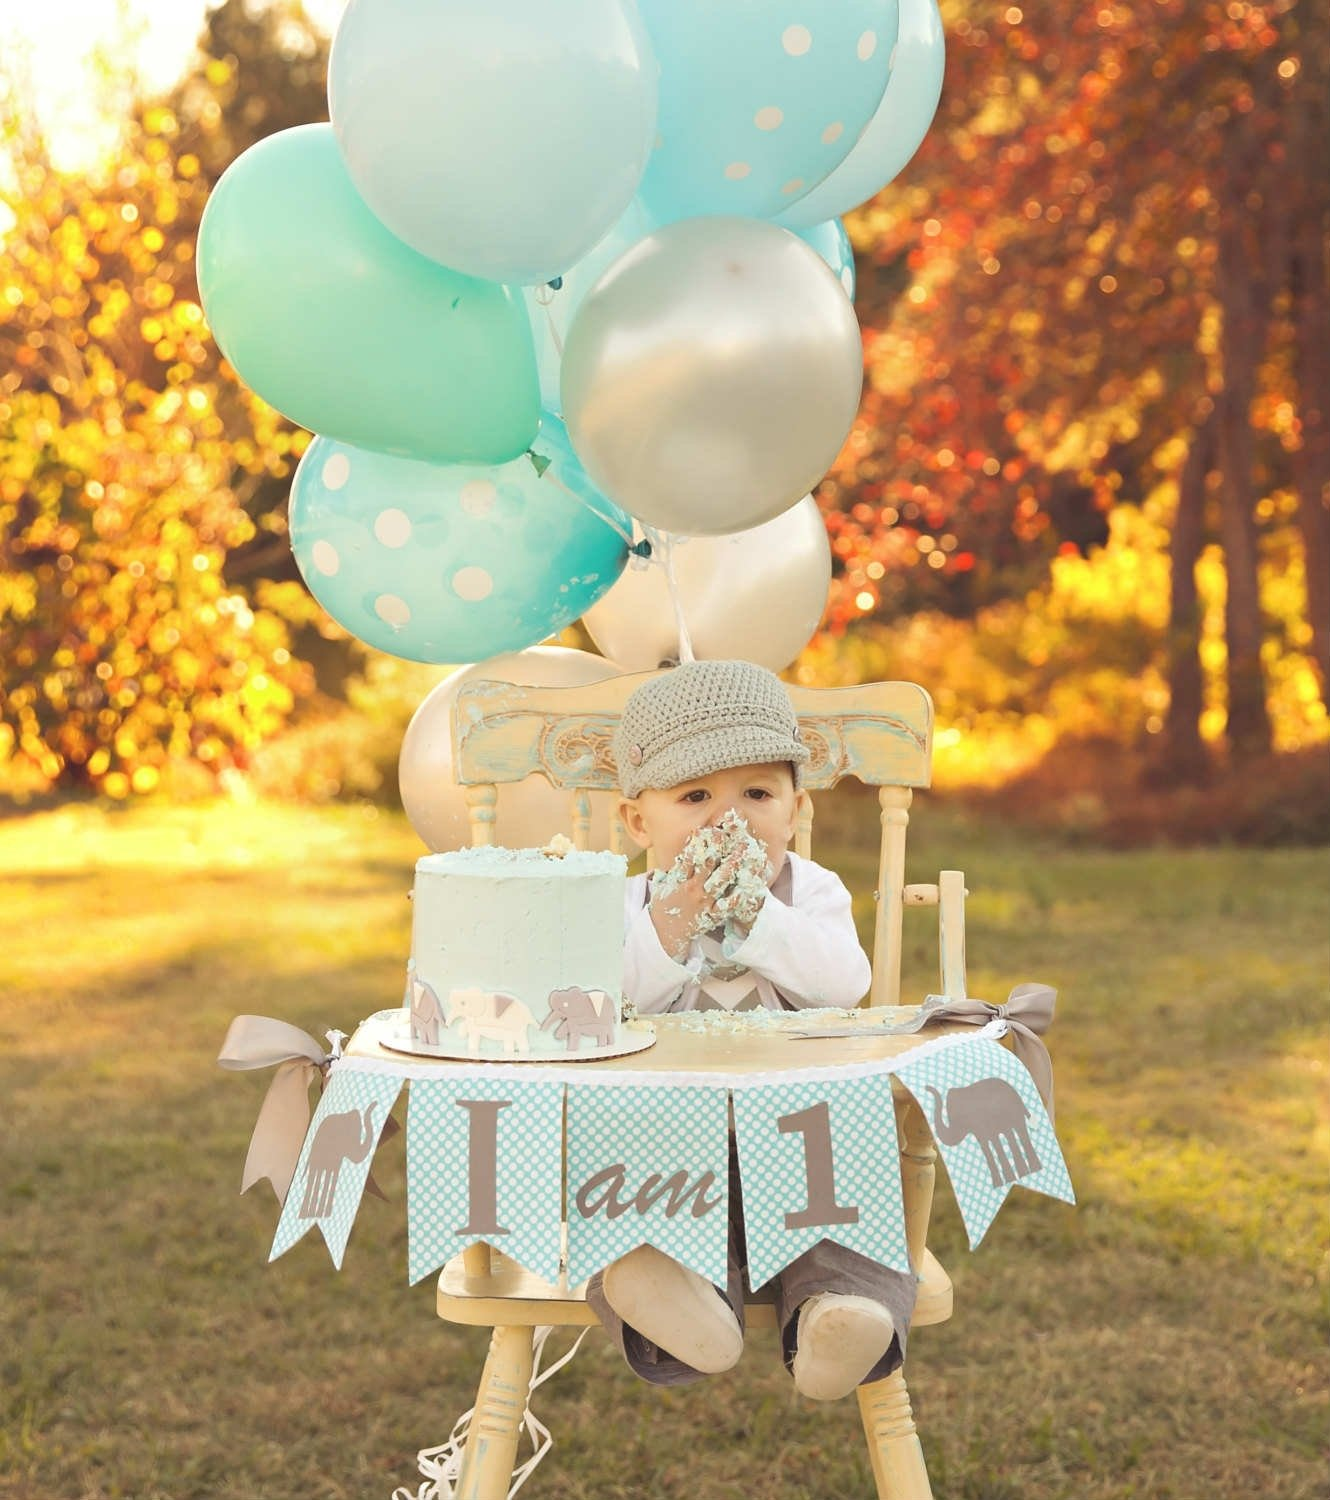 10 Attractive First Birthday Ideas For Boys first birthday the time to celebrate is here 1 2021